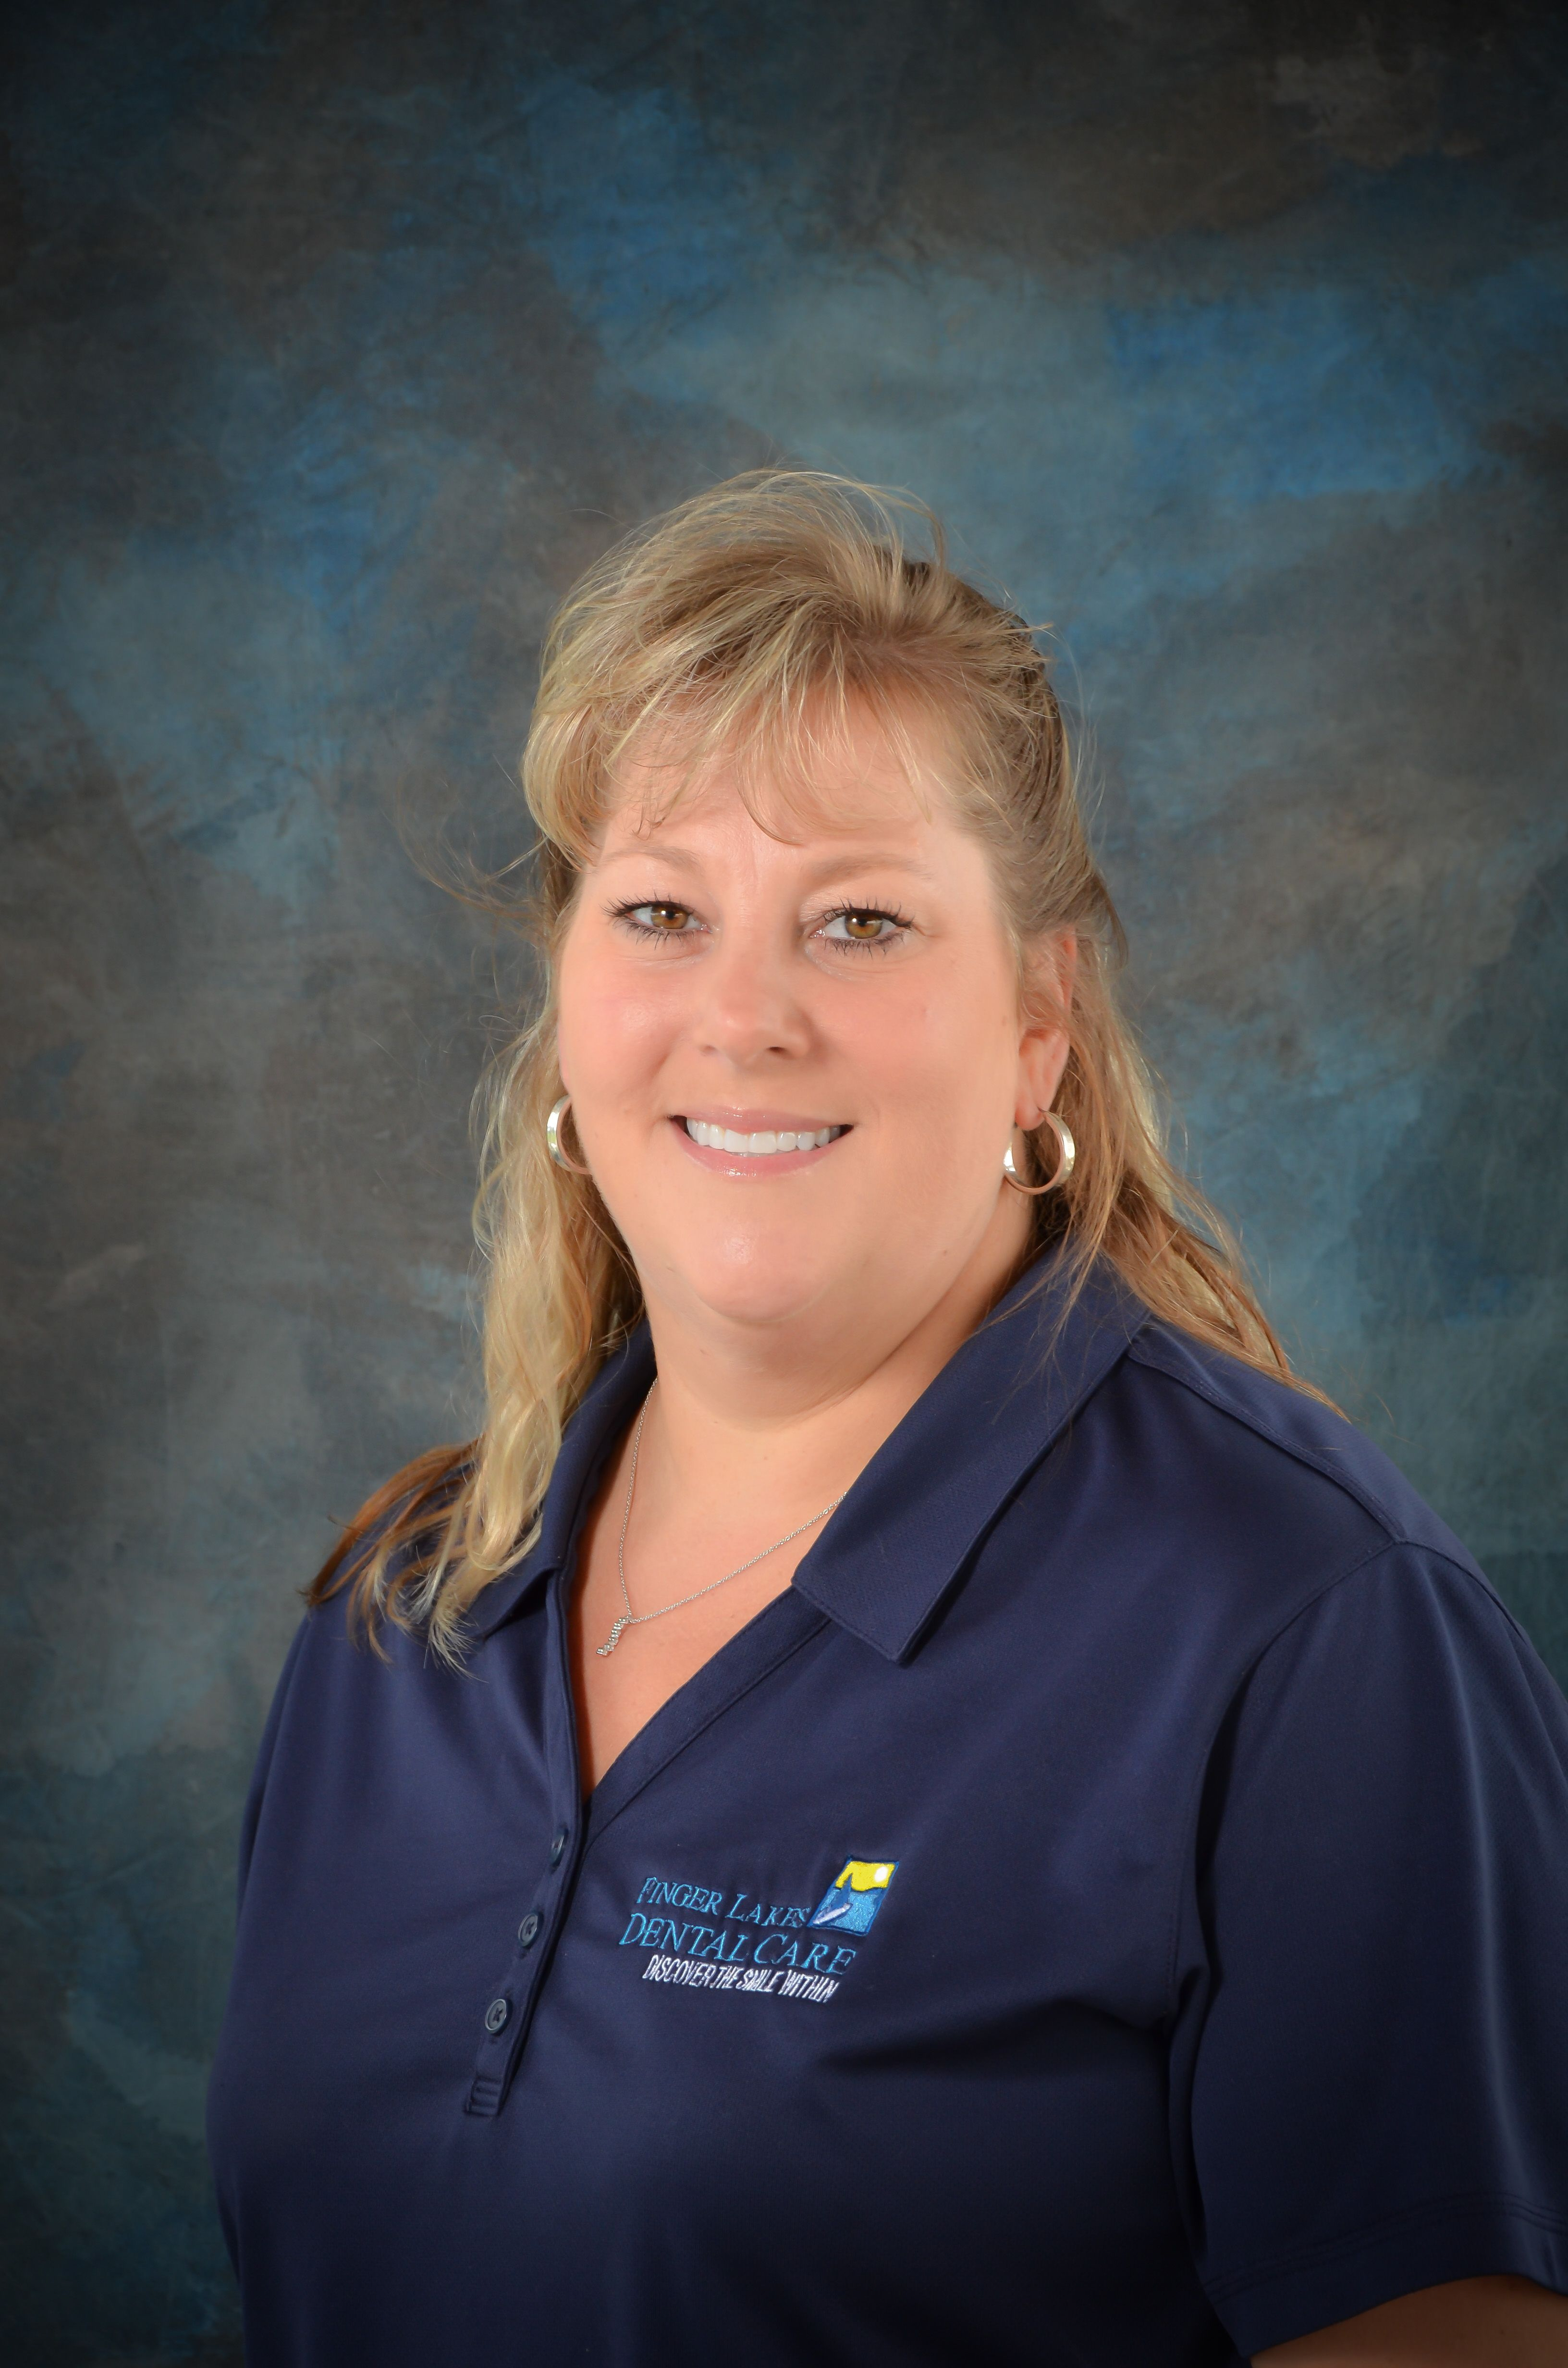 Kathy Snyder Nys Certified Dental Assistant Kathy Is A Registered